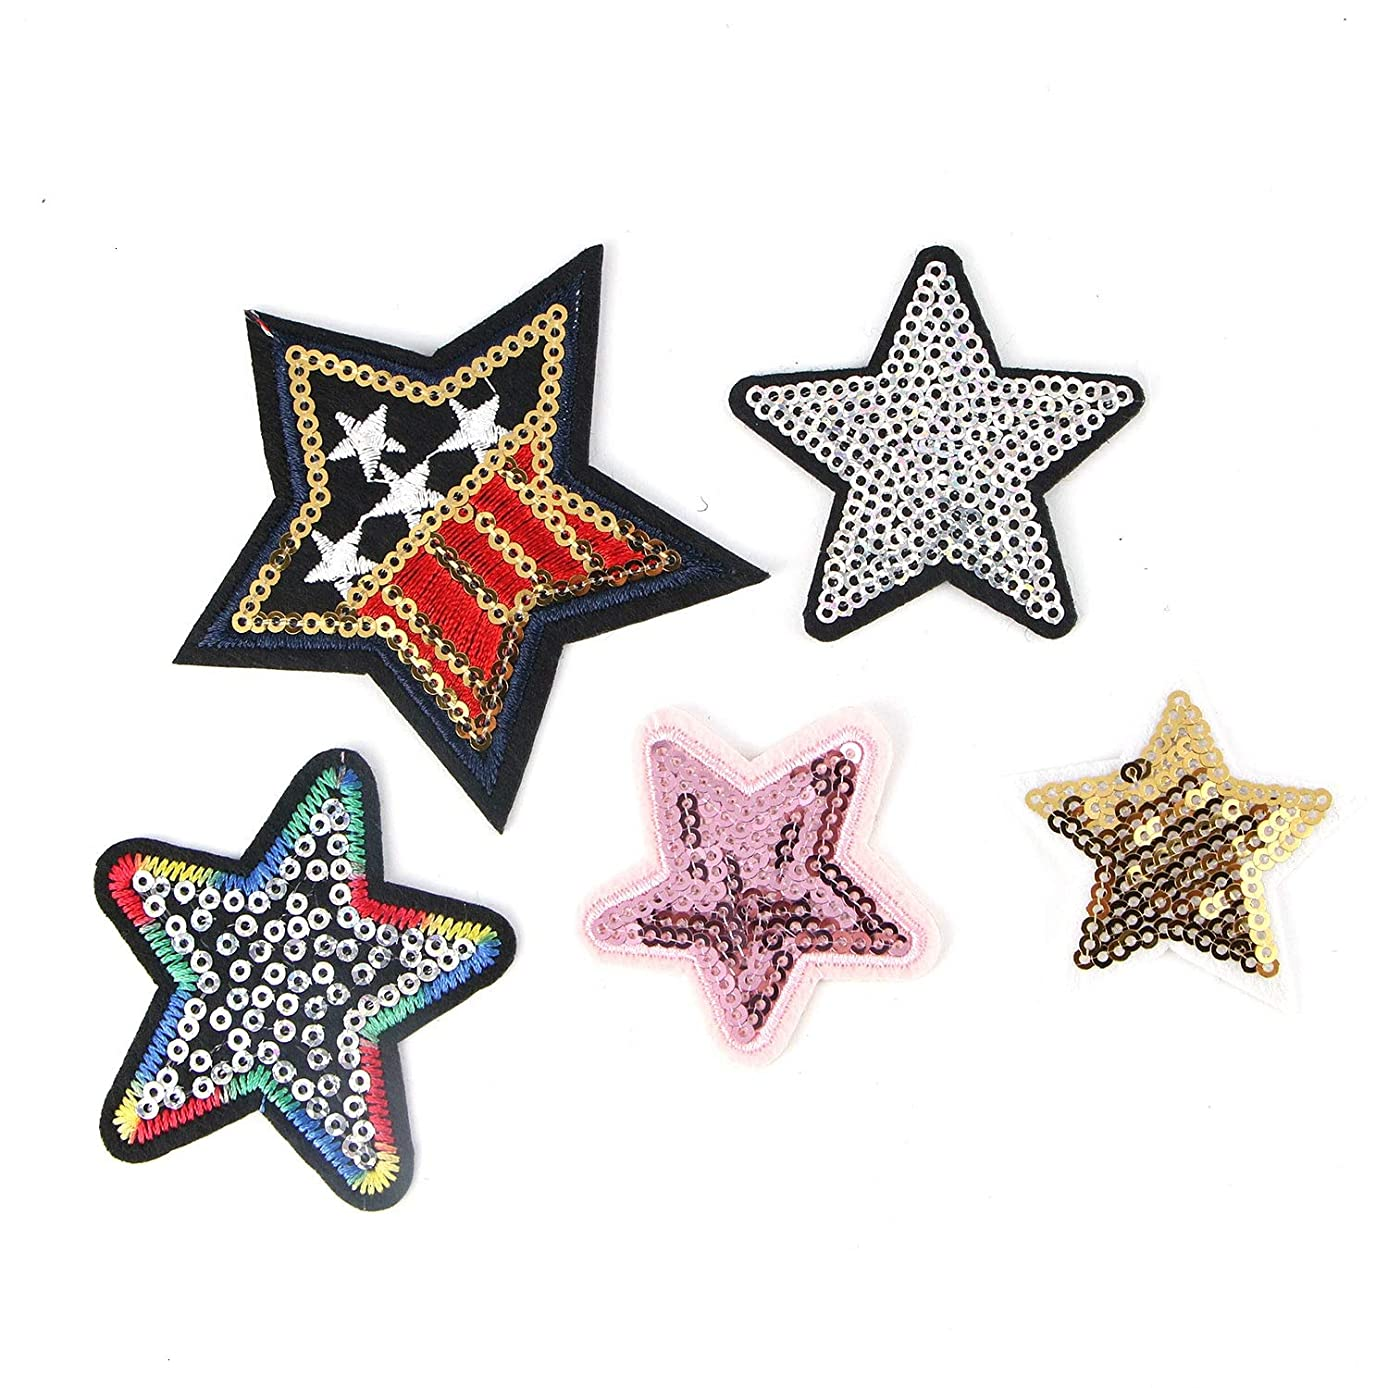 Monrocco 30Pcs Embroidery Sequined Five-Pointed Star Patches Iron On Patches for Clothing,5Colors